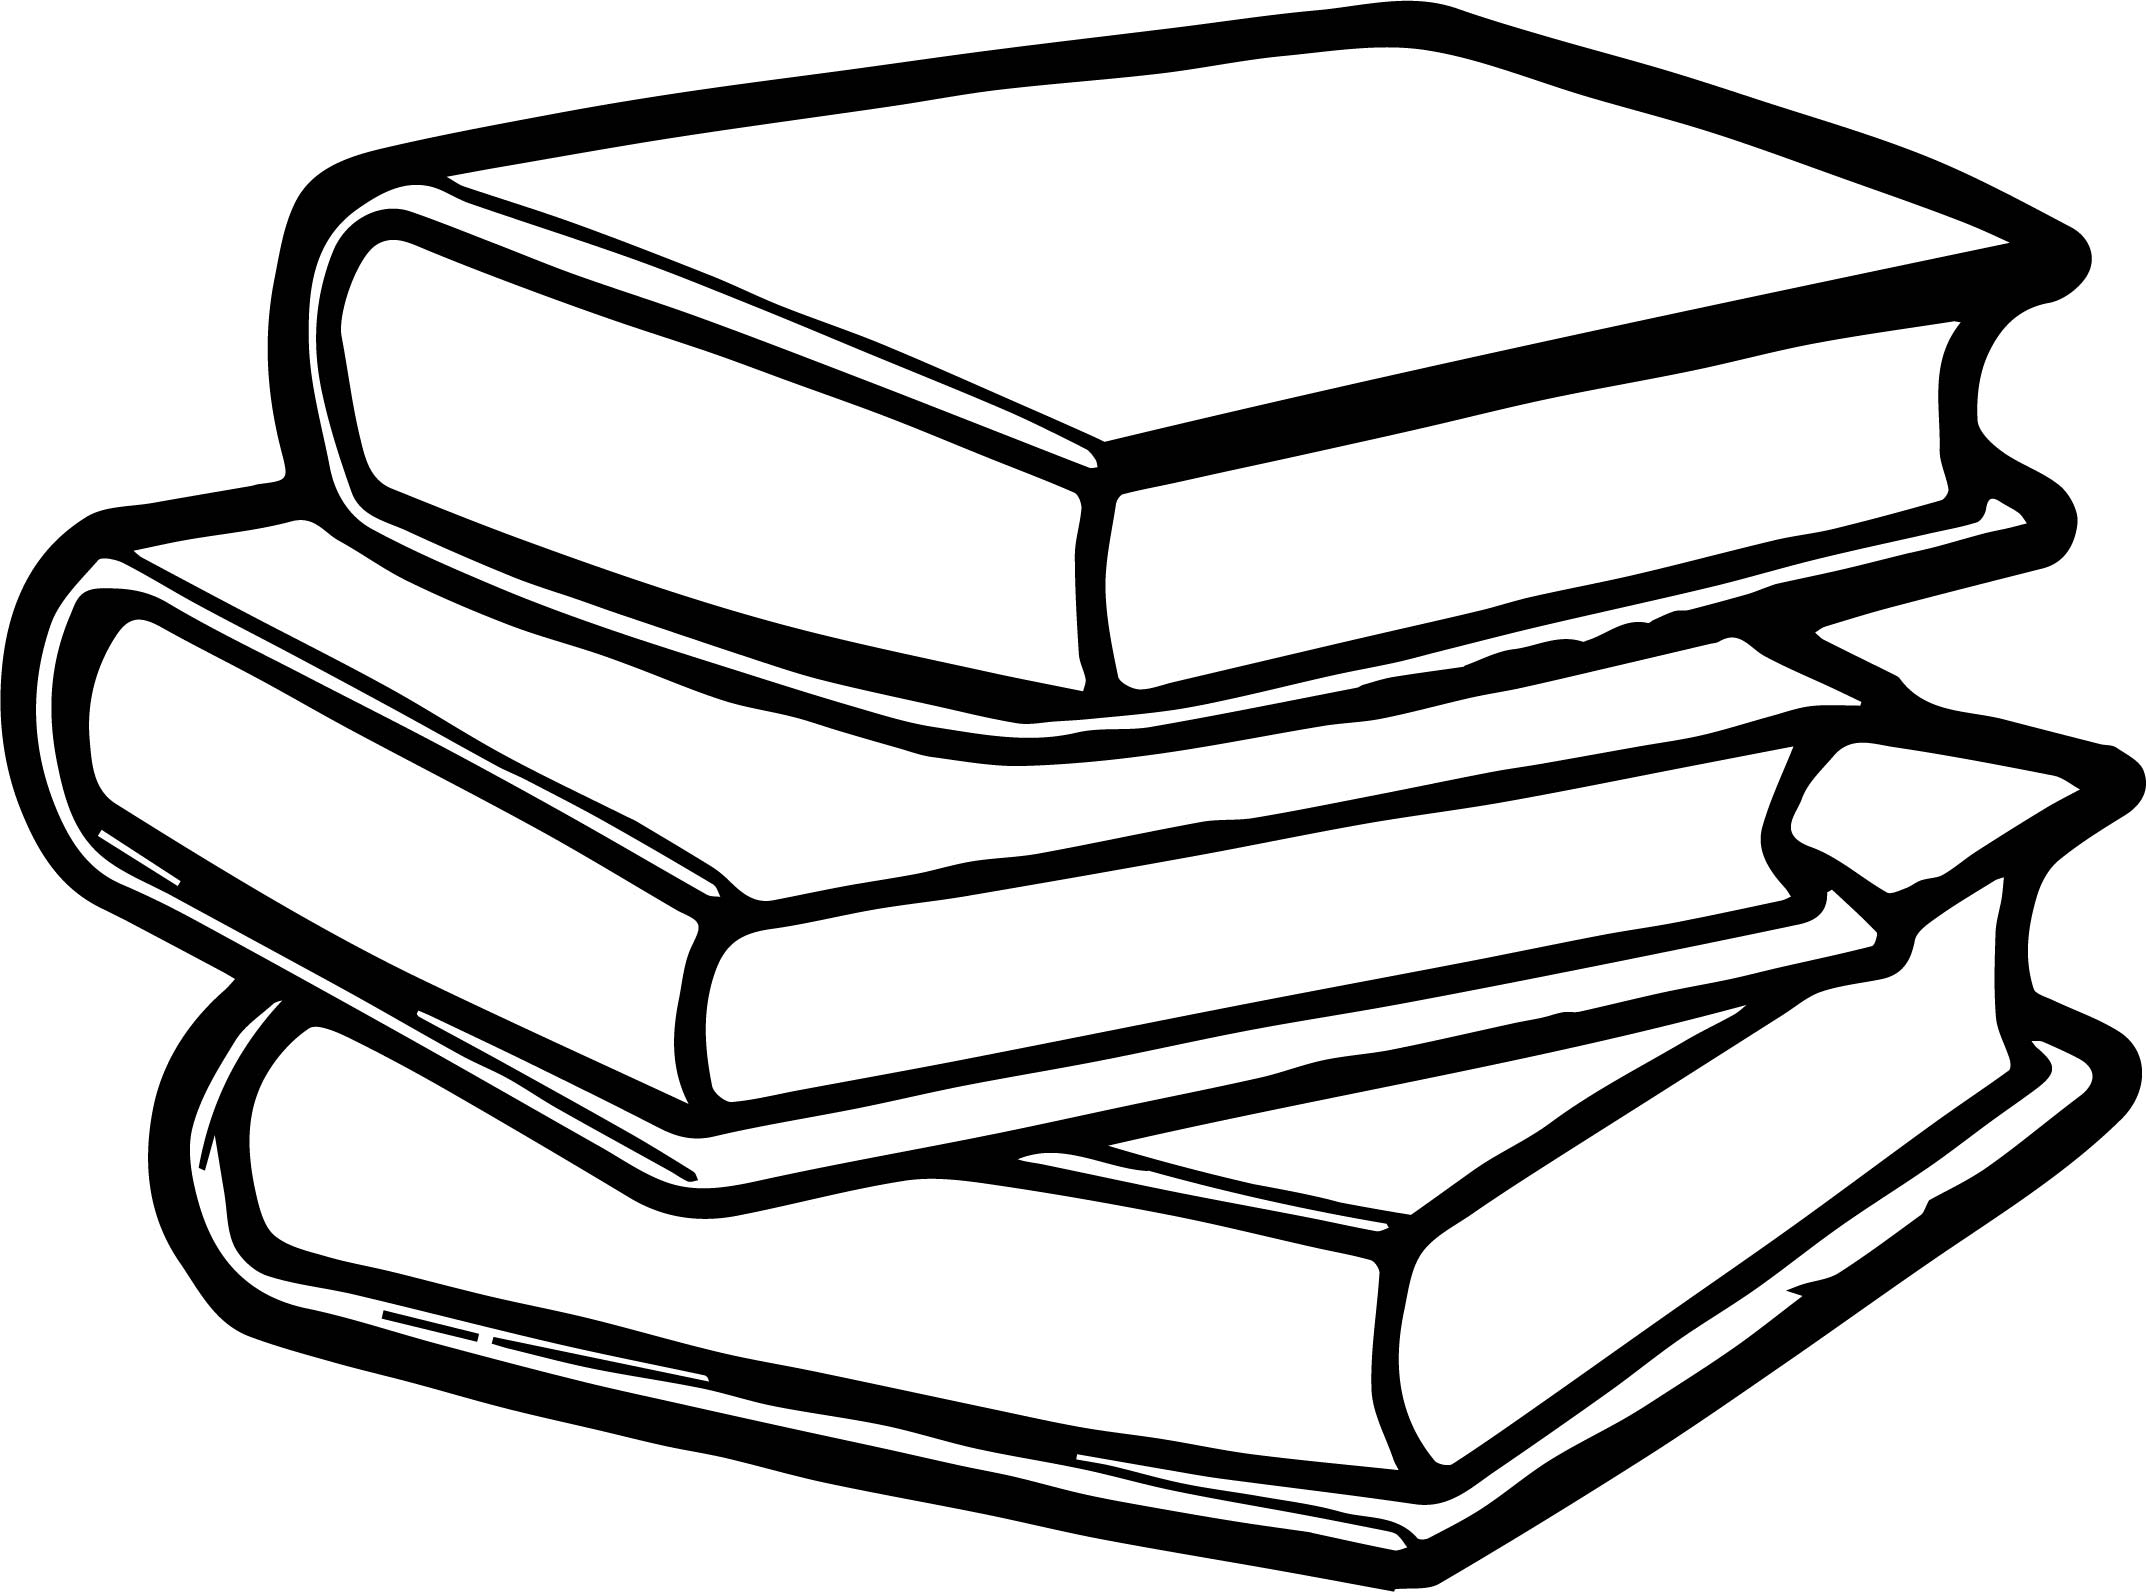 Any Book Coloring Page